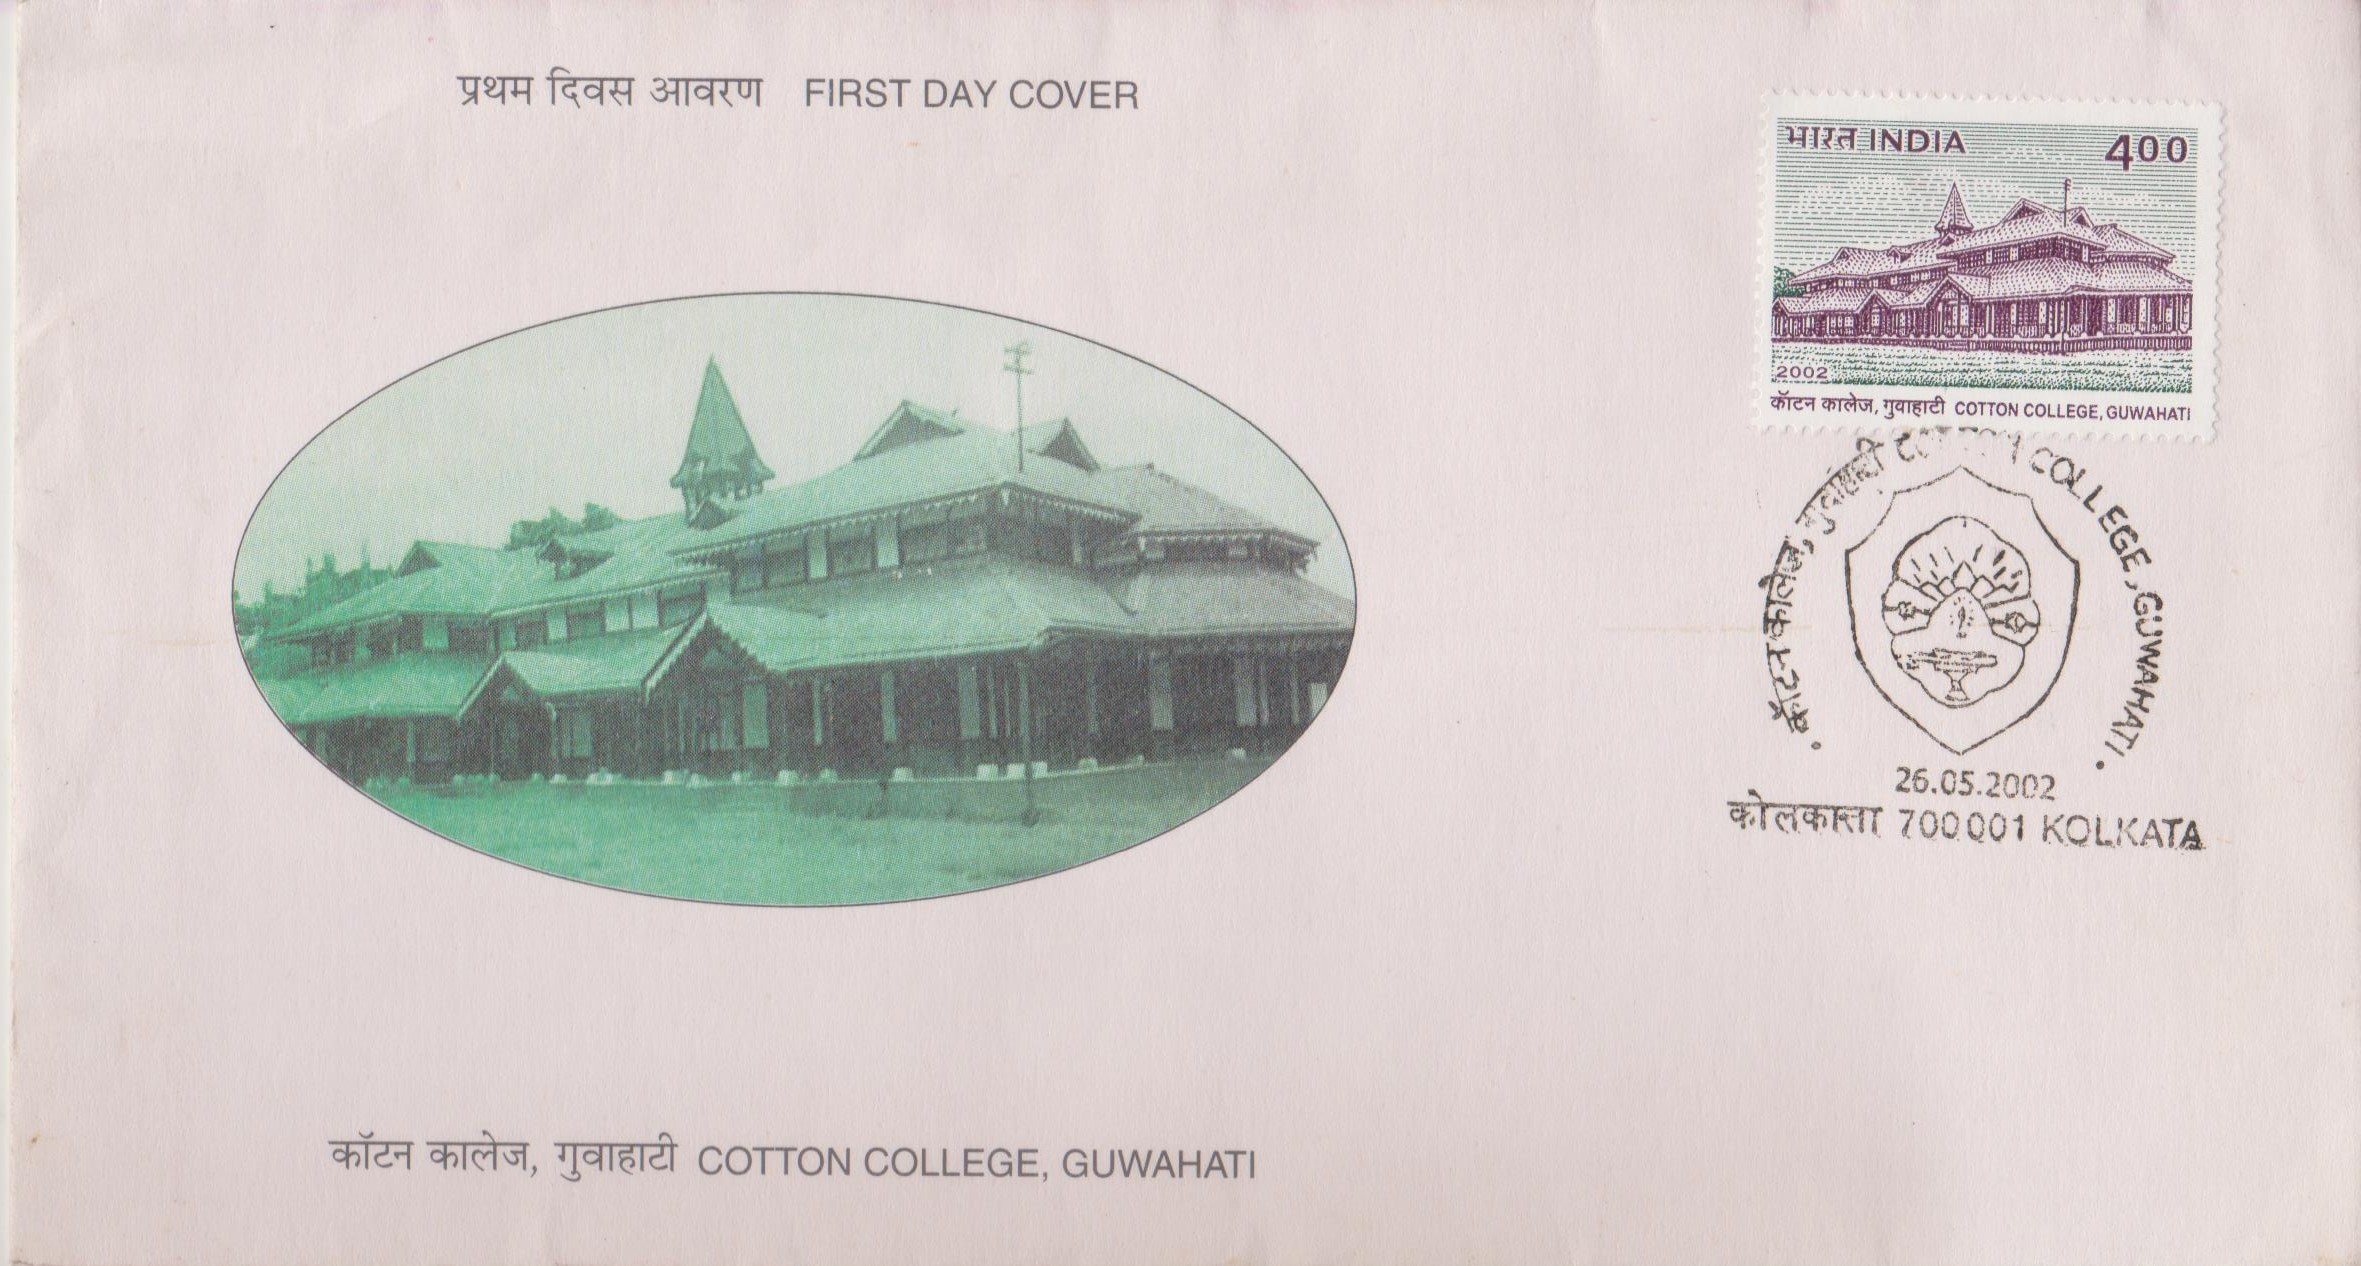 Cotton University : Assam (North East) Cultural Renaissance